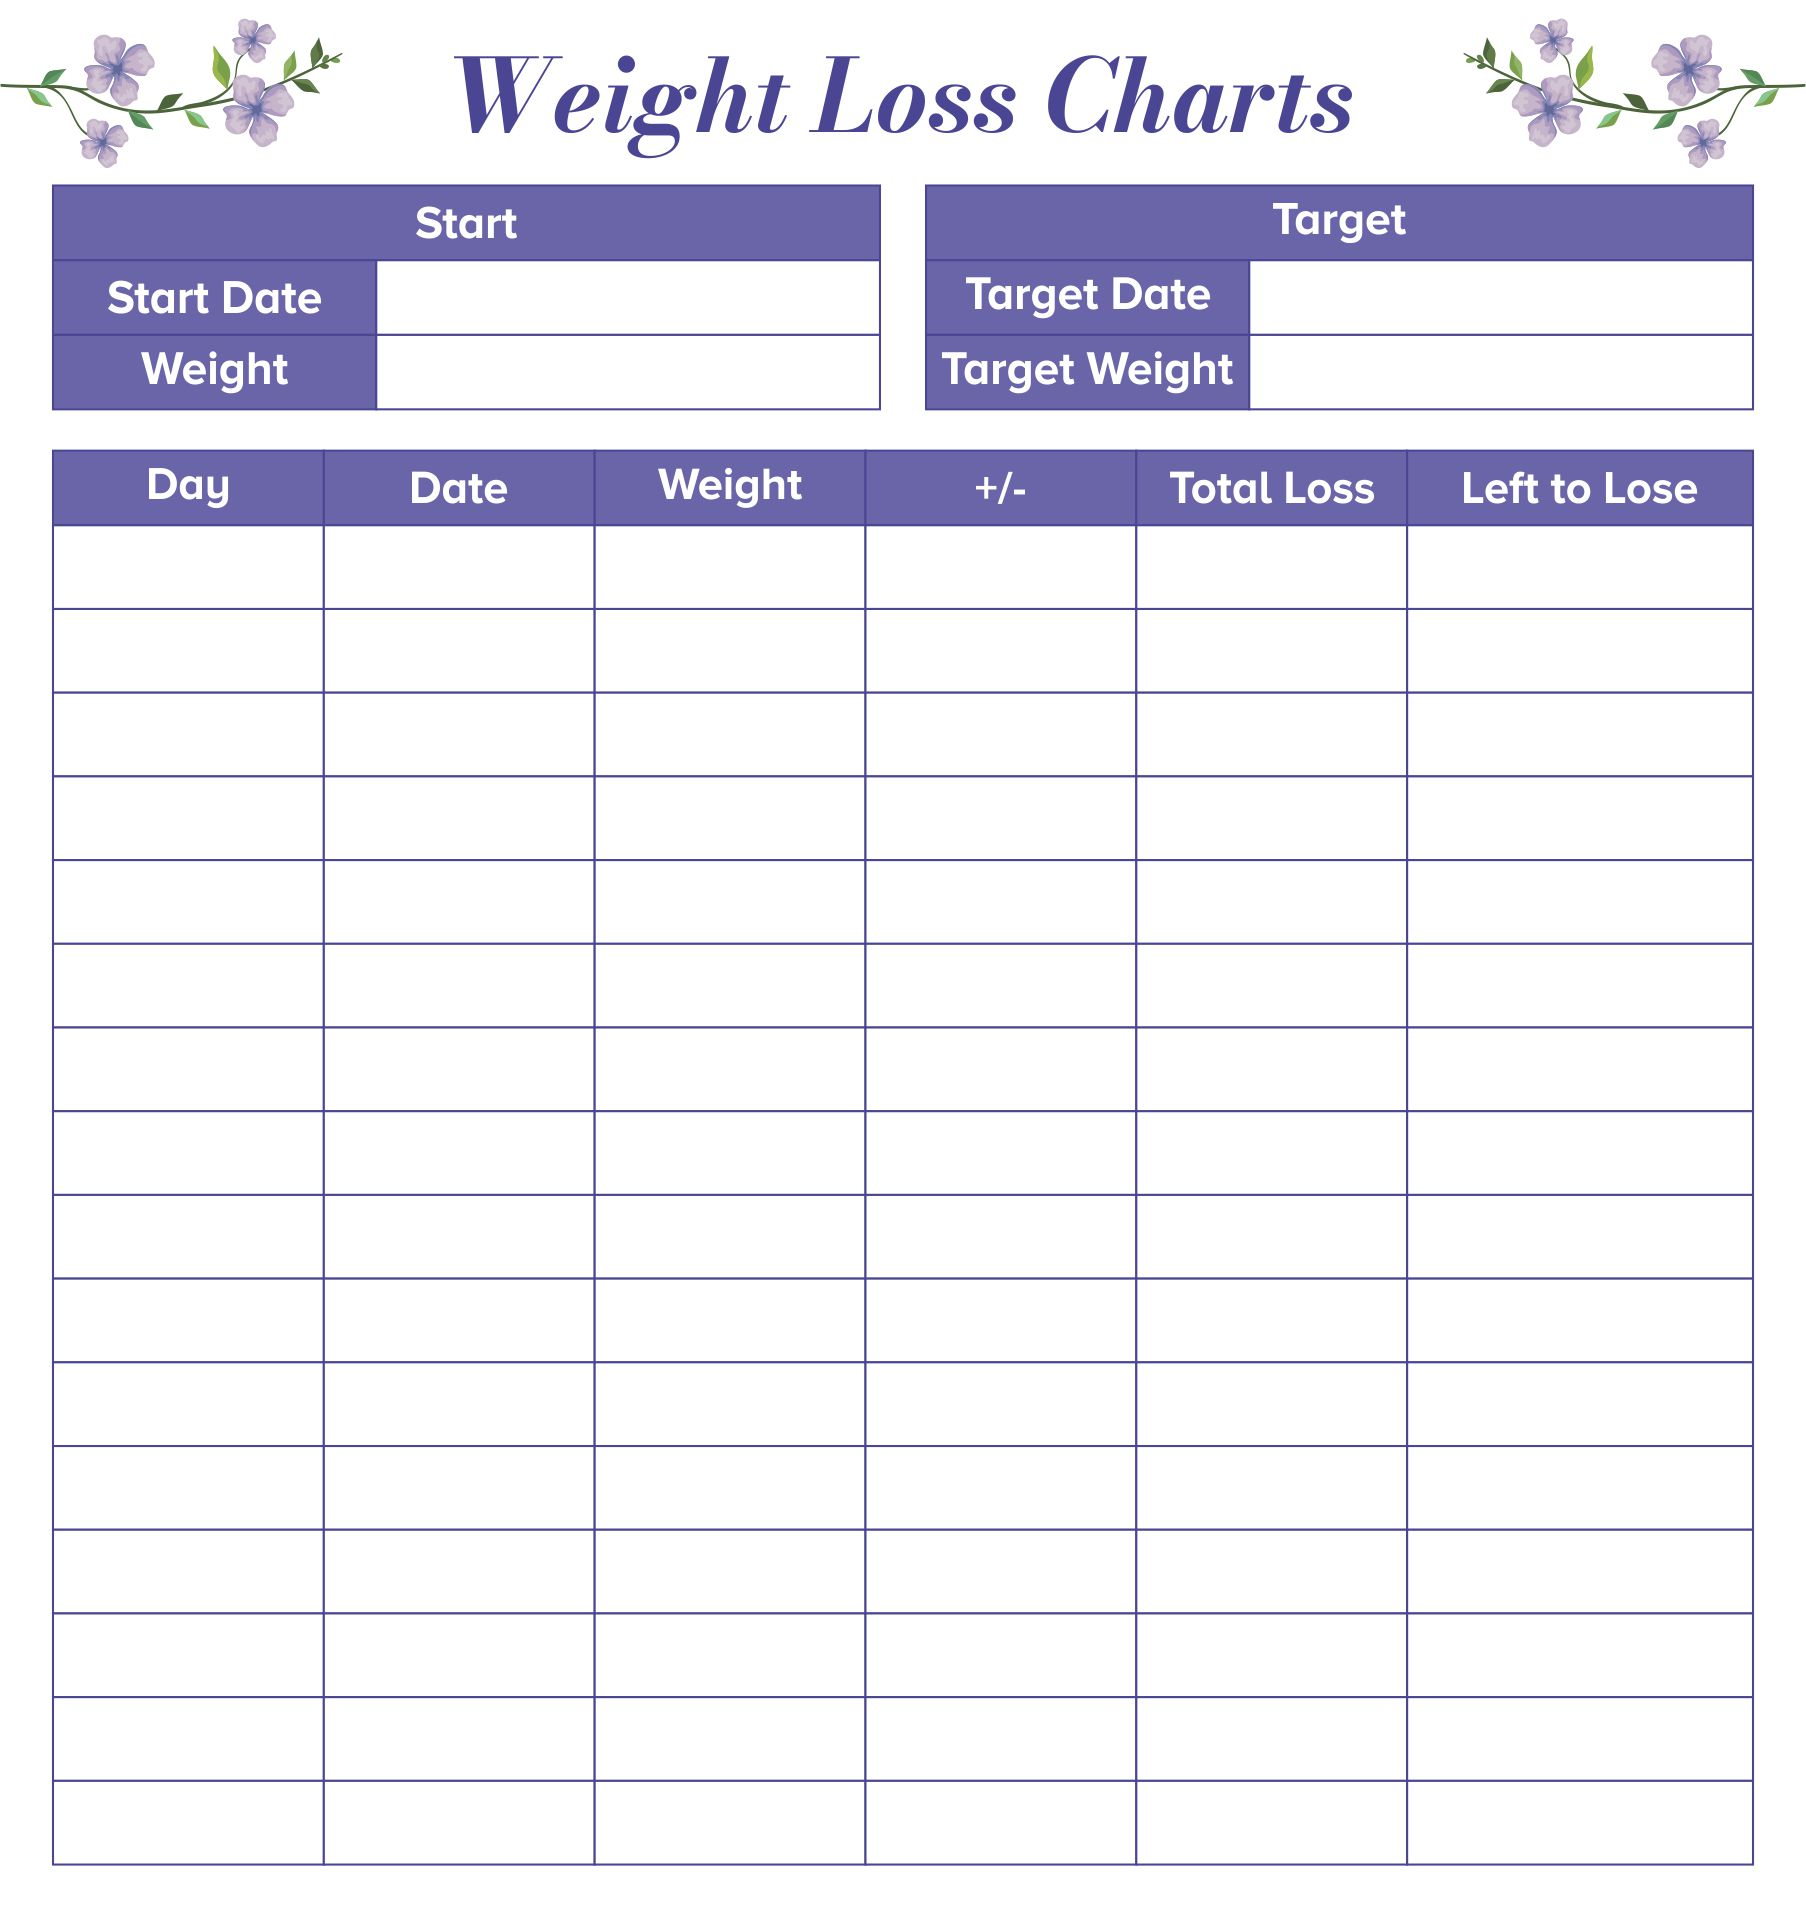 Blank Weight Loss Charts Printable